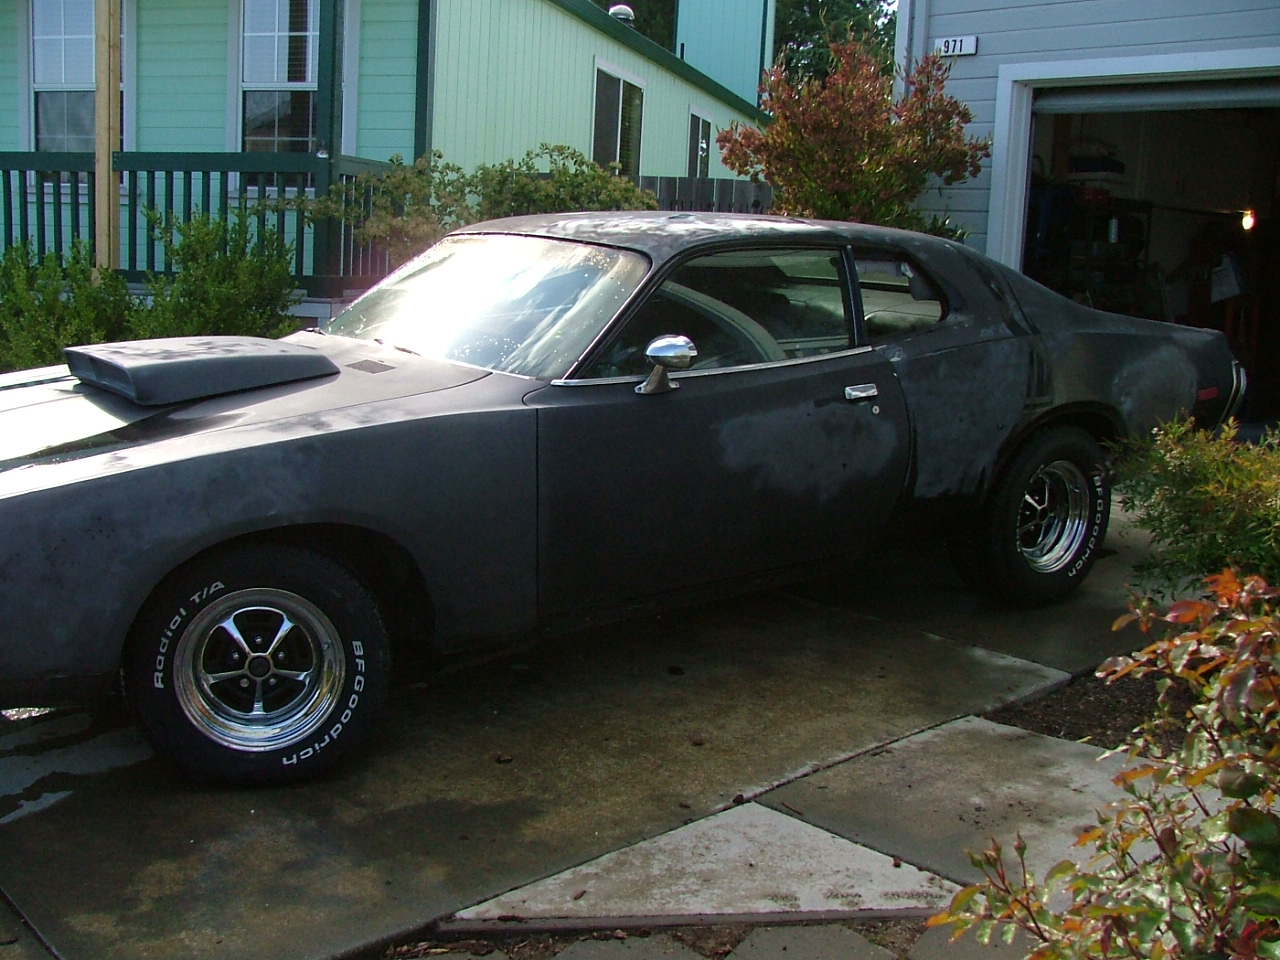 medium resolution of jeramy gates jamie sedgwick the official blog my 73 dodge charger burn notice project